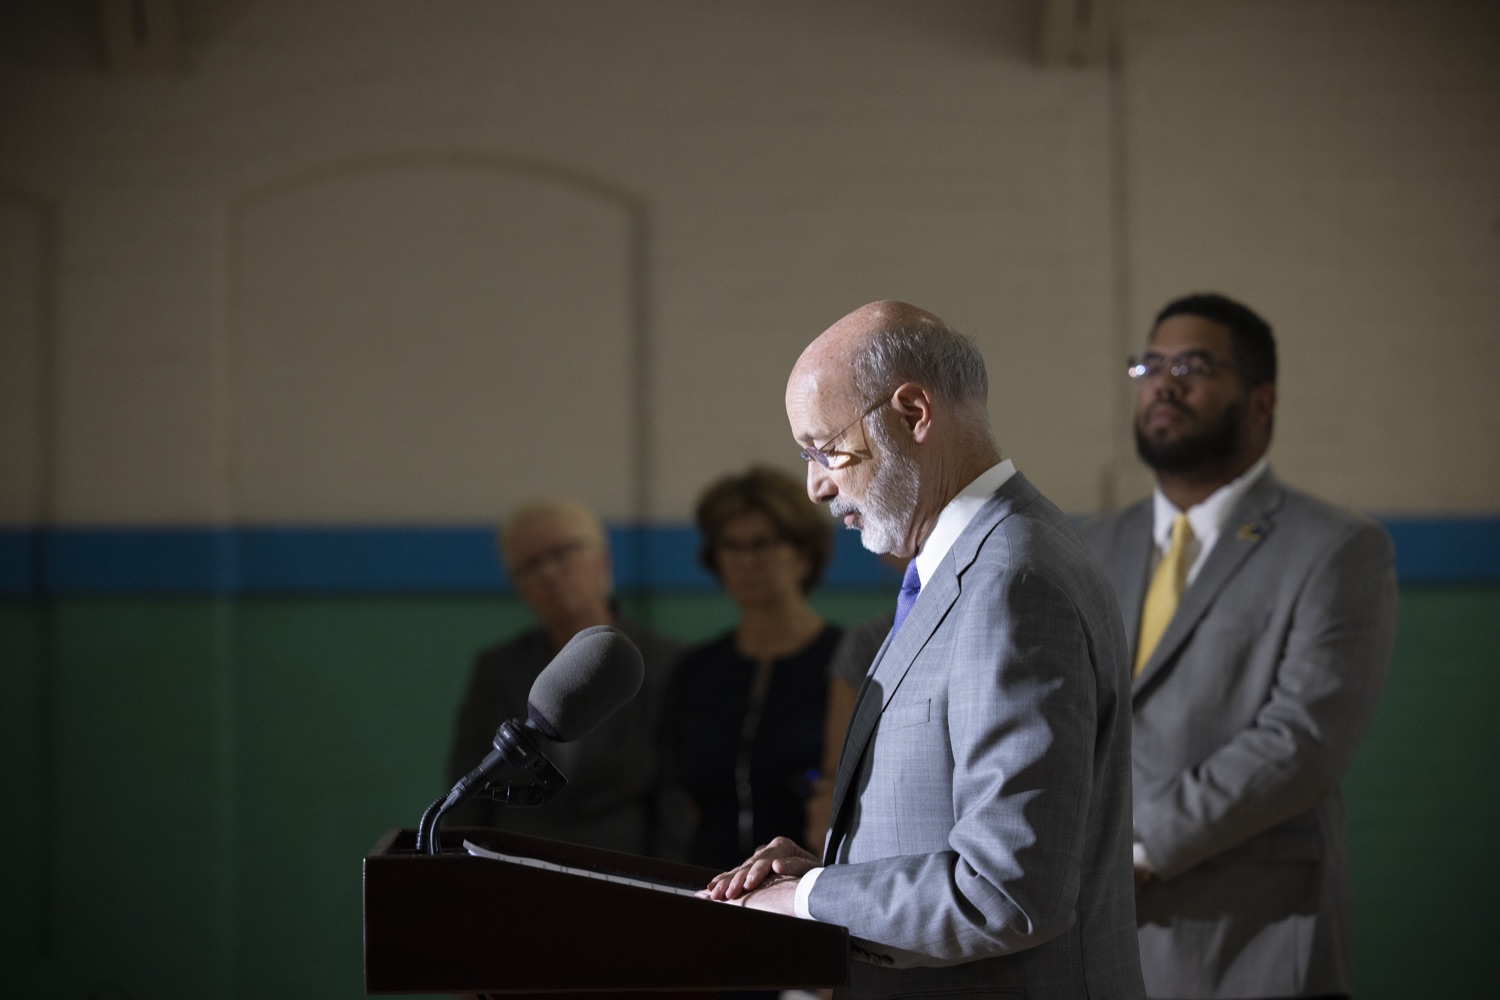 """<a href=""""https://filesource.wostreaming.net/commonwealthofpa/photo/18940_gov_childhooded_dz_003.jpg"""" target=""""_blank"""">⇣Download Photo<br></a>Pennsylvania Governor Tom Wolf speaking with the press.  Governor Tom Wolf today was joined by advocates and legislative members to celebrate the $30 million increase in early childhood education funding in the state budget at the YMCA in Reading. This new funding will allow an additional 3,270 children to enroll in the states high-quality early learning programs.  Reading, PA - July 19, 2021"""